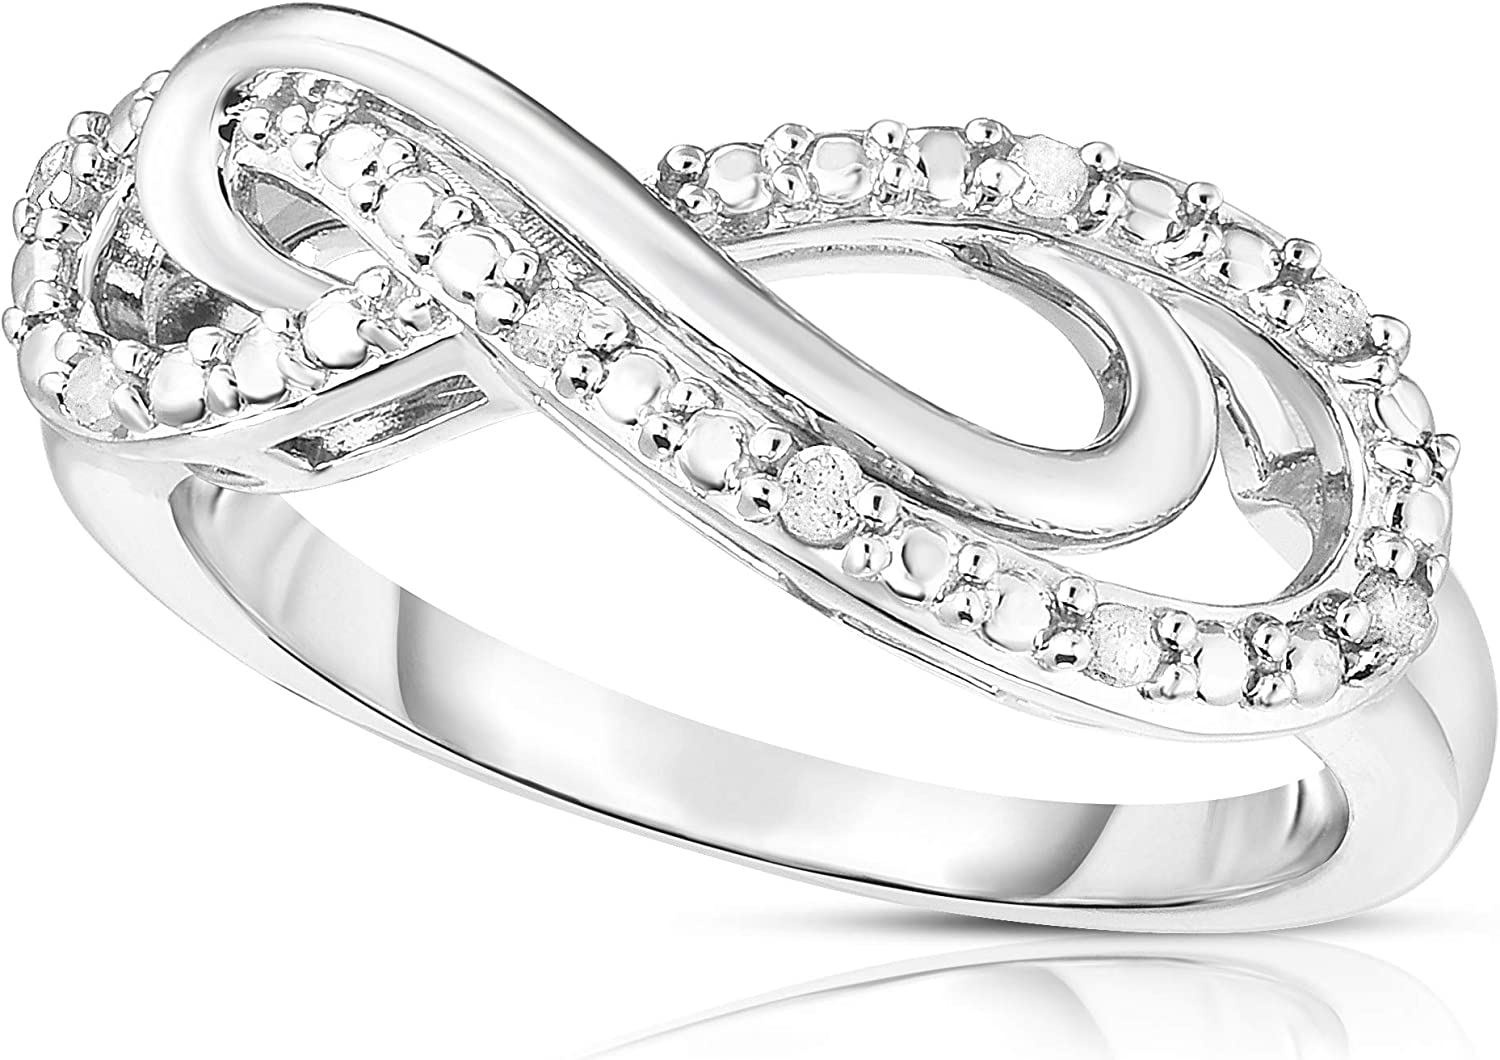 Femme Luxe Price reduction Infinity Statement Ring - sold out Diamond Carat Rhodi in 0.08